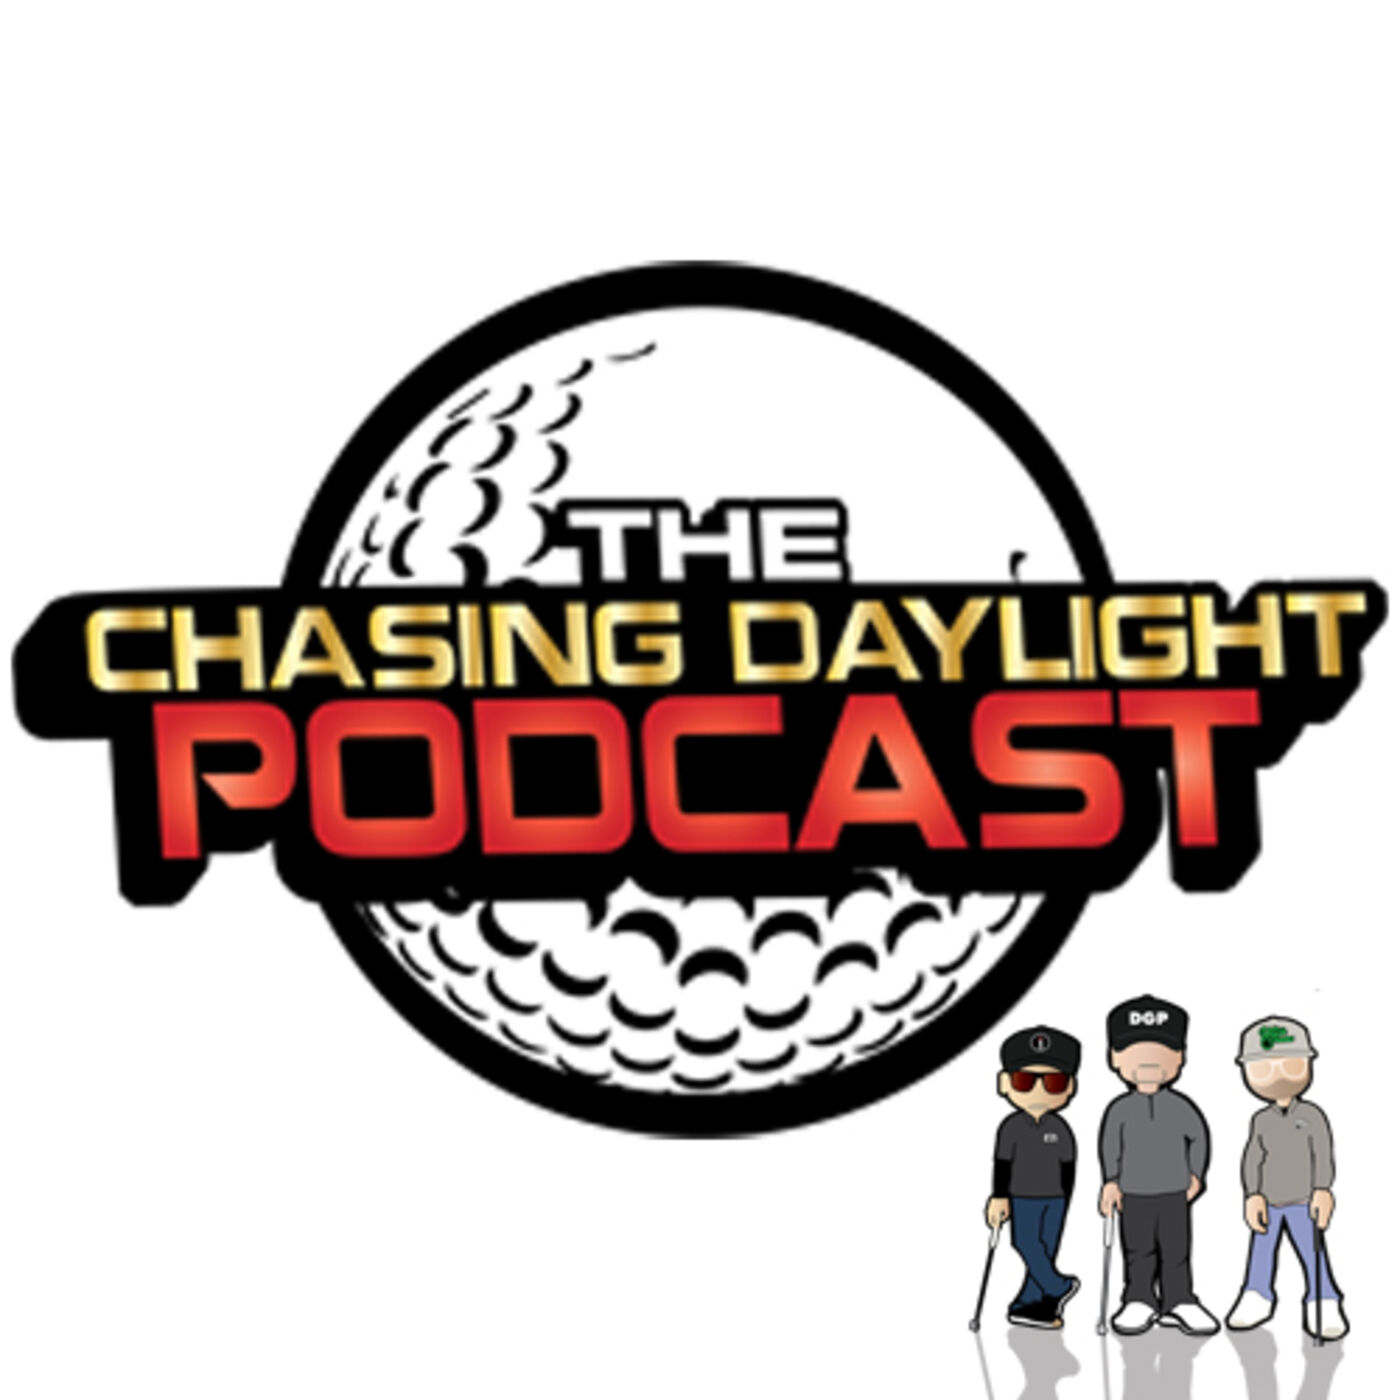 E121: Michael Bruscino and his journey into Golf. A VGN Winner, Bandon Dunes Trip and his role with Hipe Media